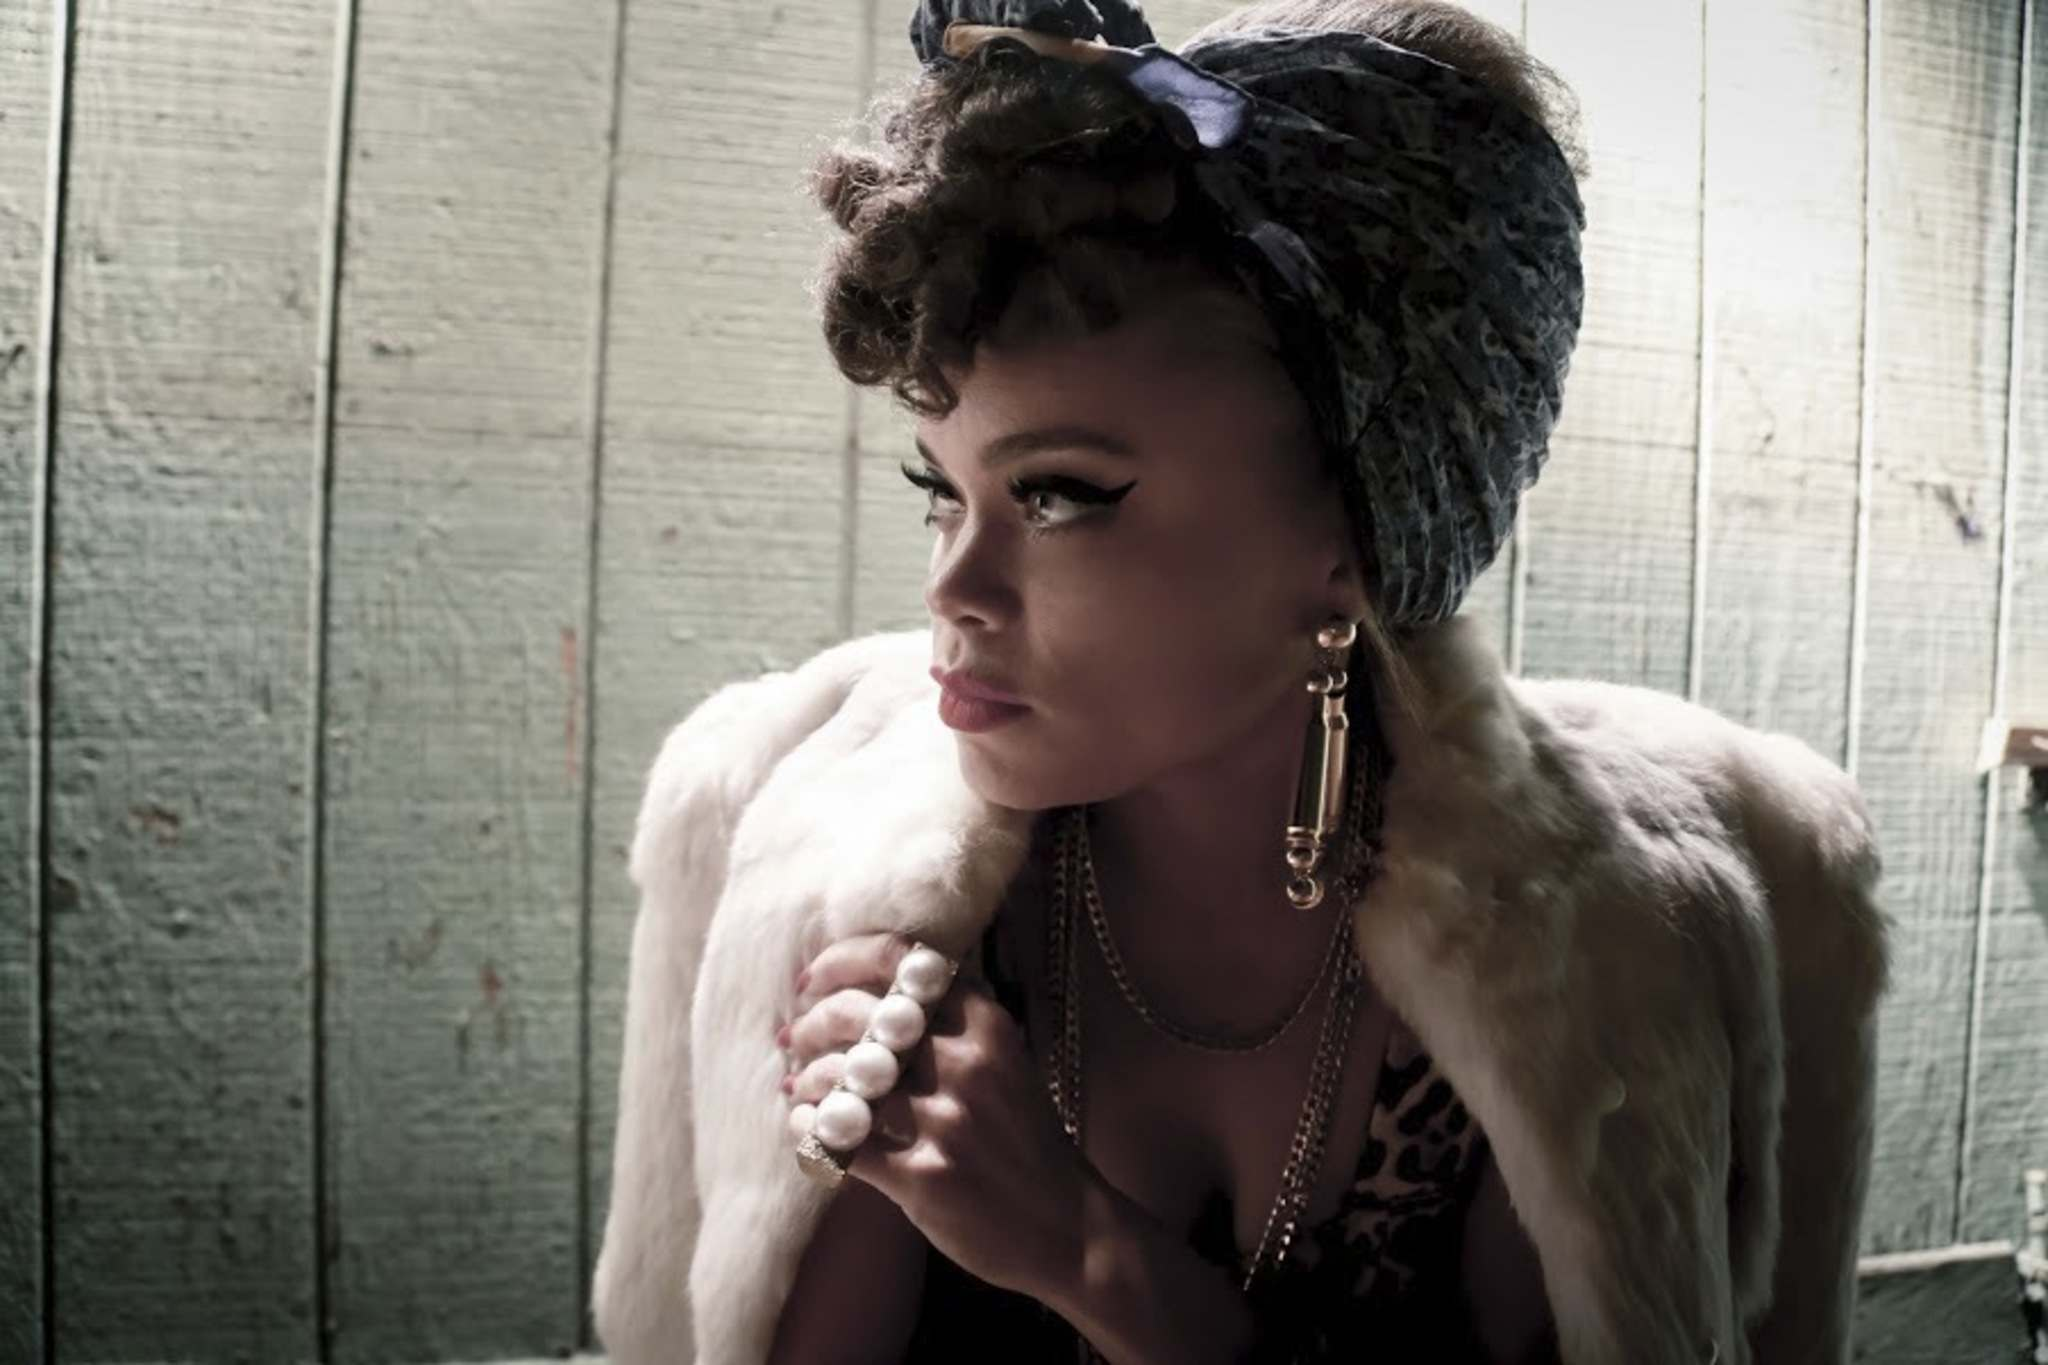 SUPPLIED</p><p>Singer Andra Day is among the top-billed artists performing at this year's Winnipeg International Jazz Festival. Her debut album was nominated for two Grammys.</p>